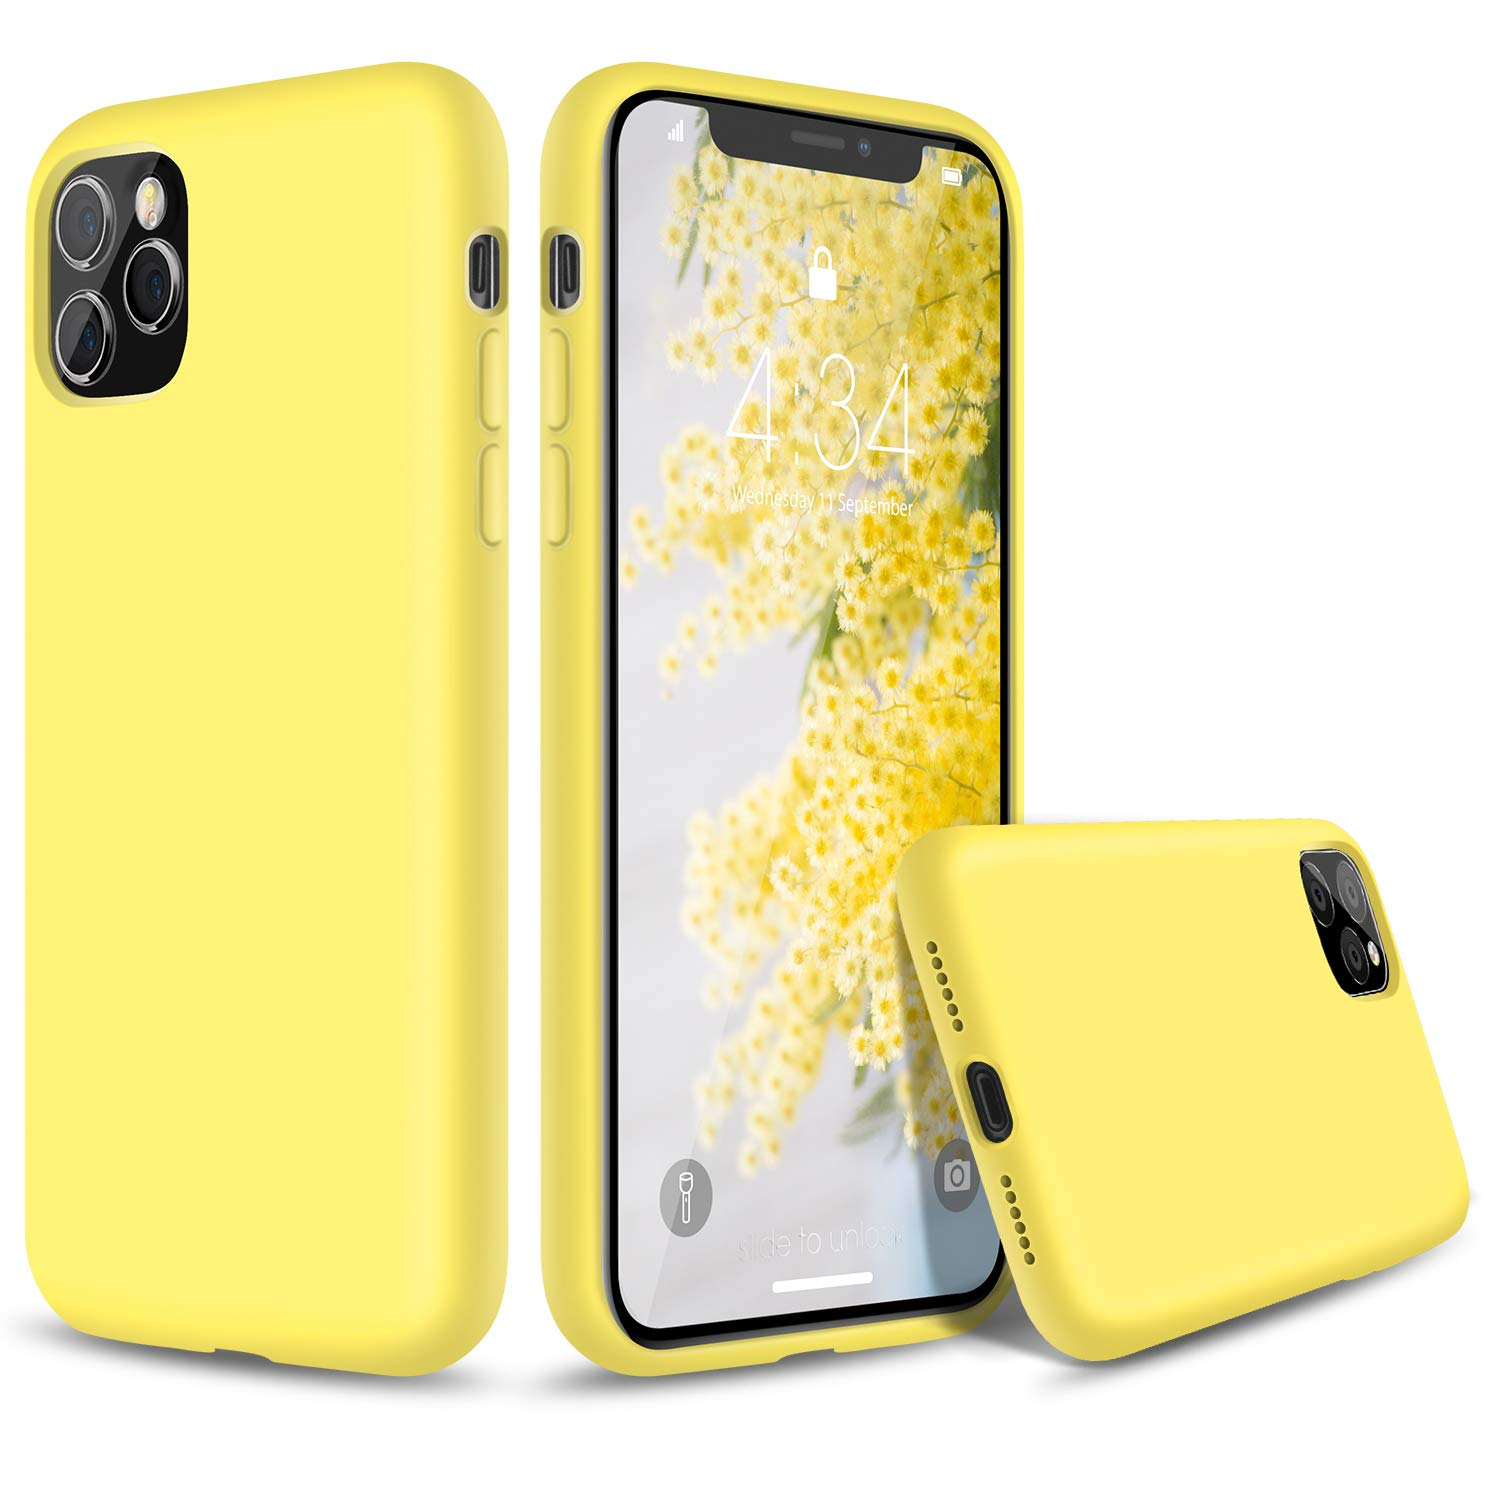 """abitku Silicone Case for iPhone 11 Pro Max,Liquid Silicone Gel Rubber Shockproof Protective Case Cover (Full Body Case with Microfiber Lining) Compatible with iPhone 11 Pro Max 6.5"""" 2019 (Yellow)"""